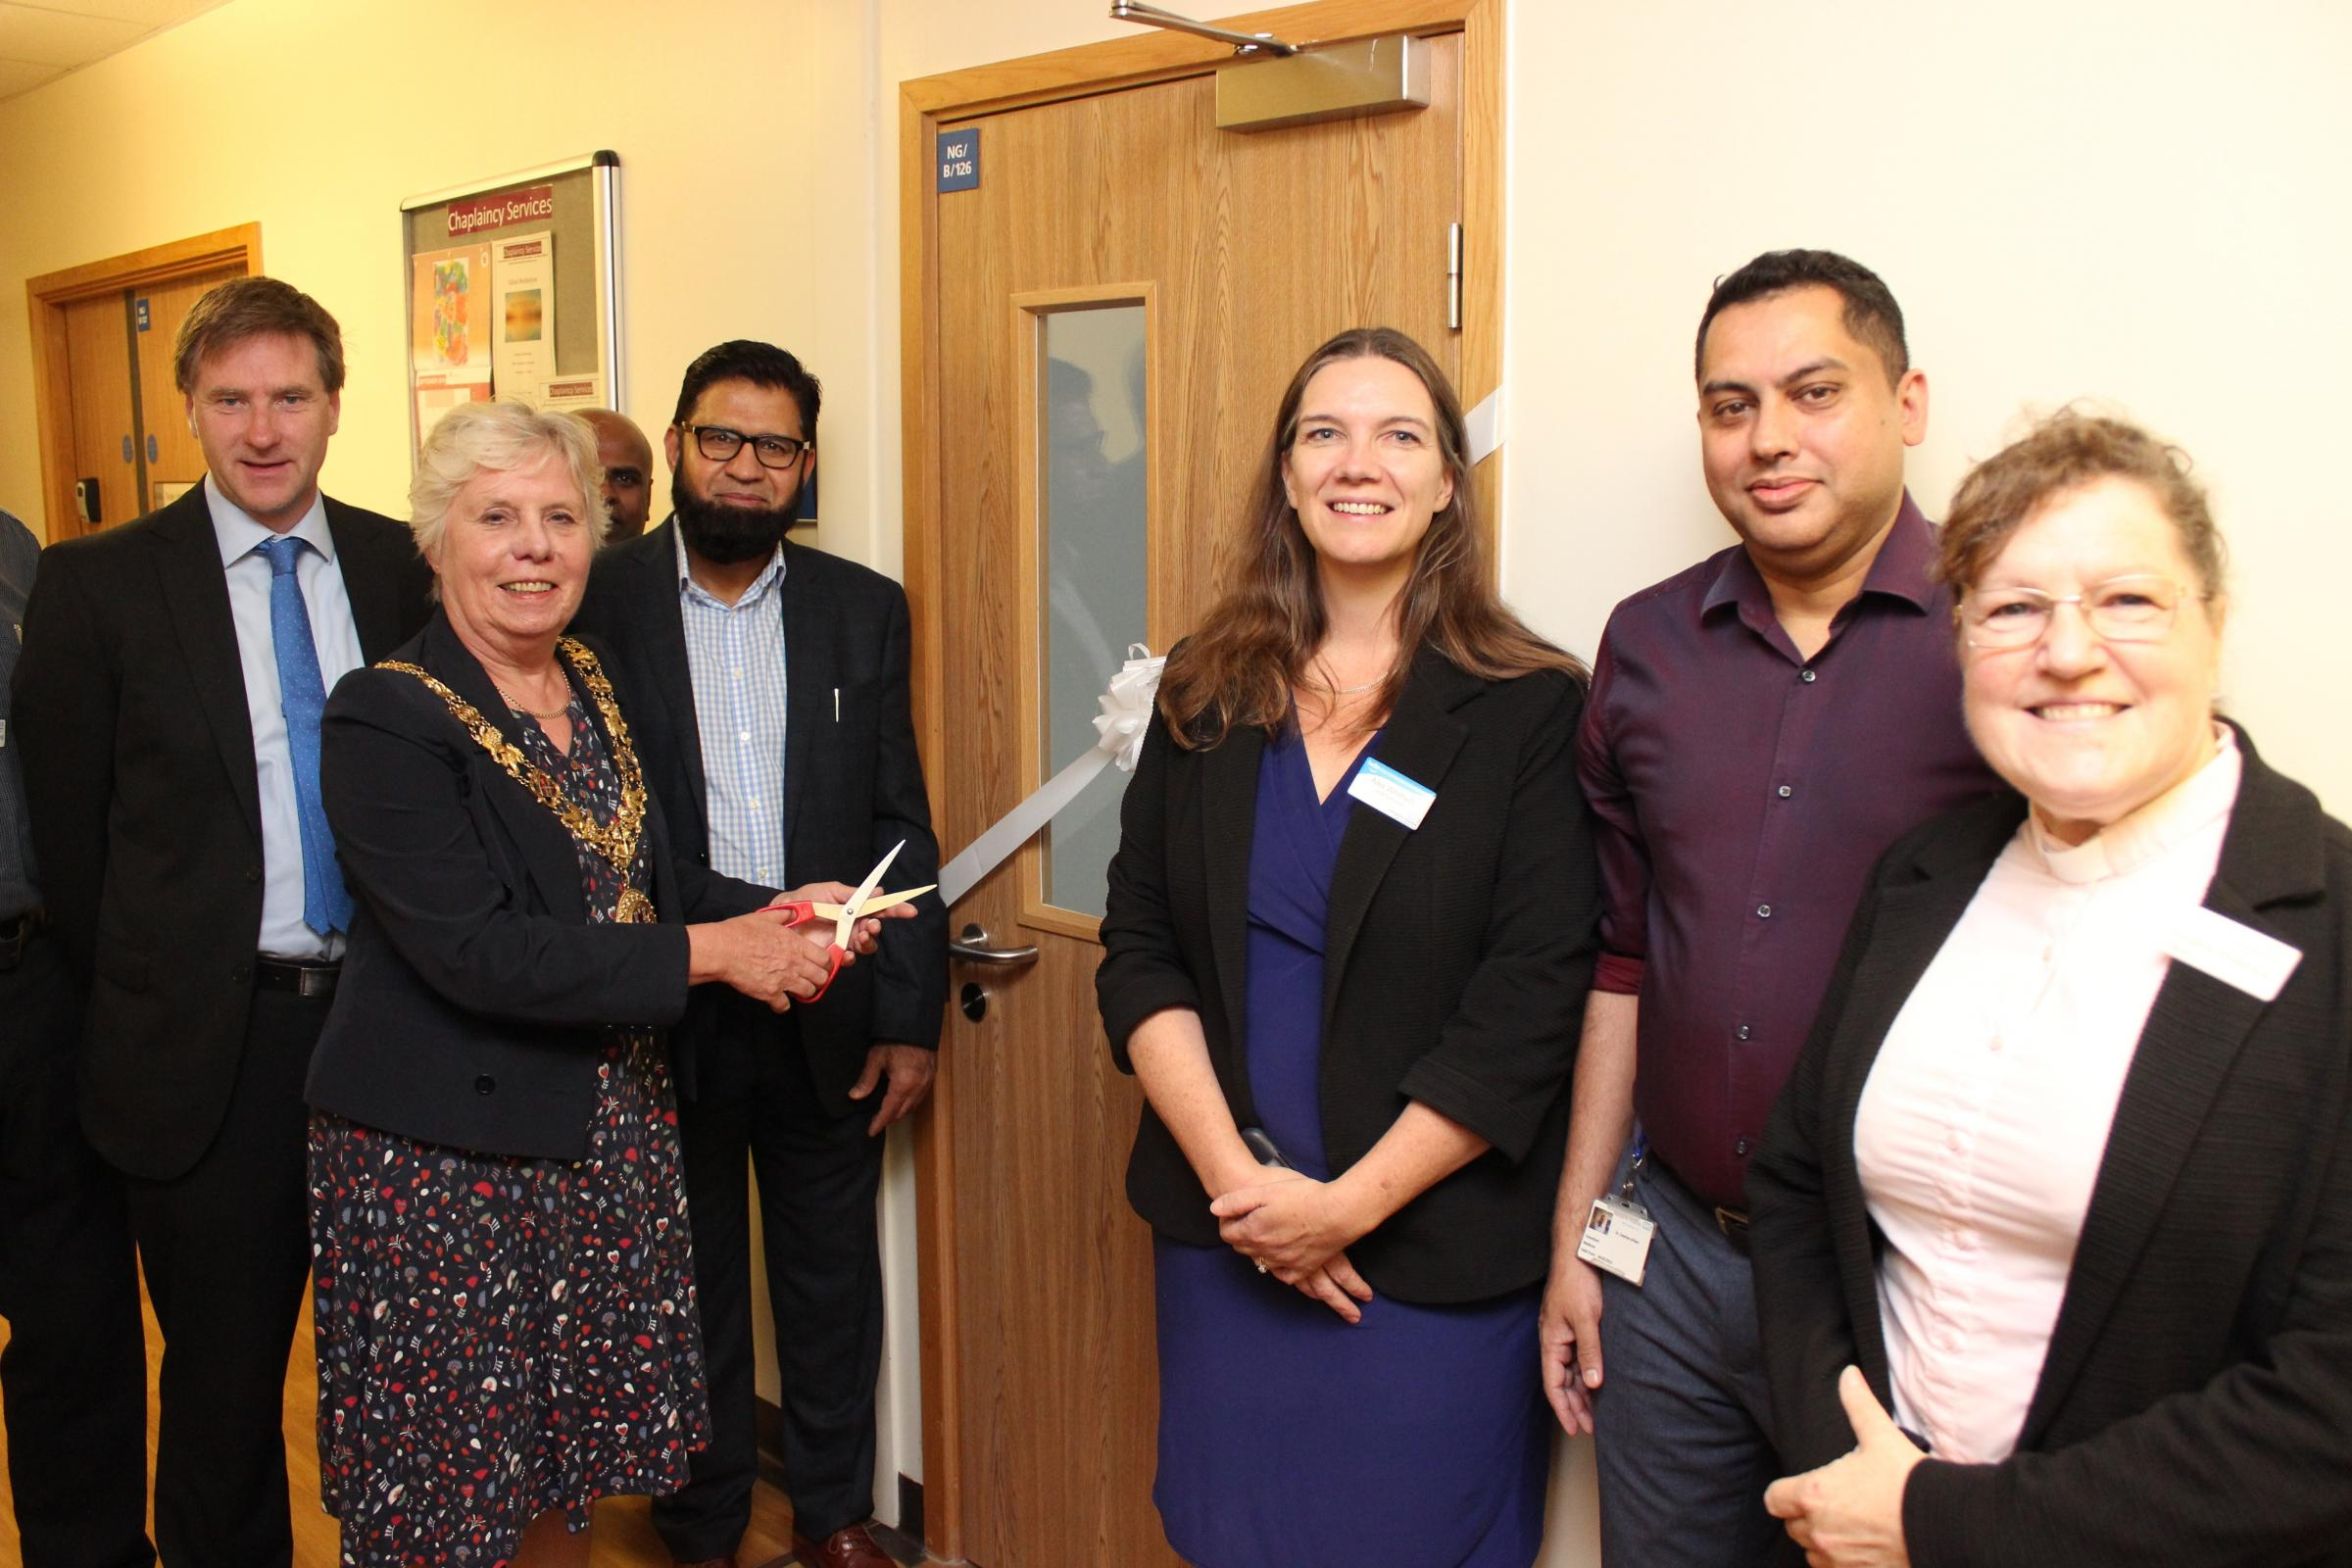 New multi-faith room opens at Royal Hampshire County Hospital in Winchester